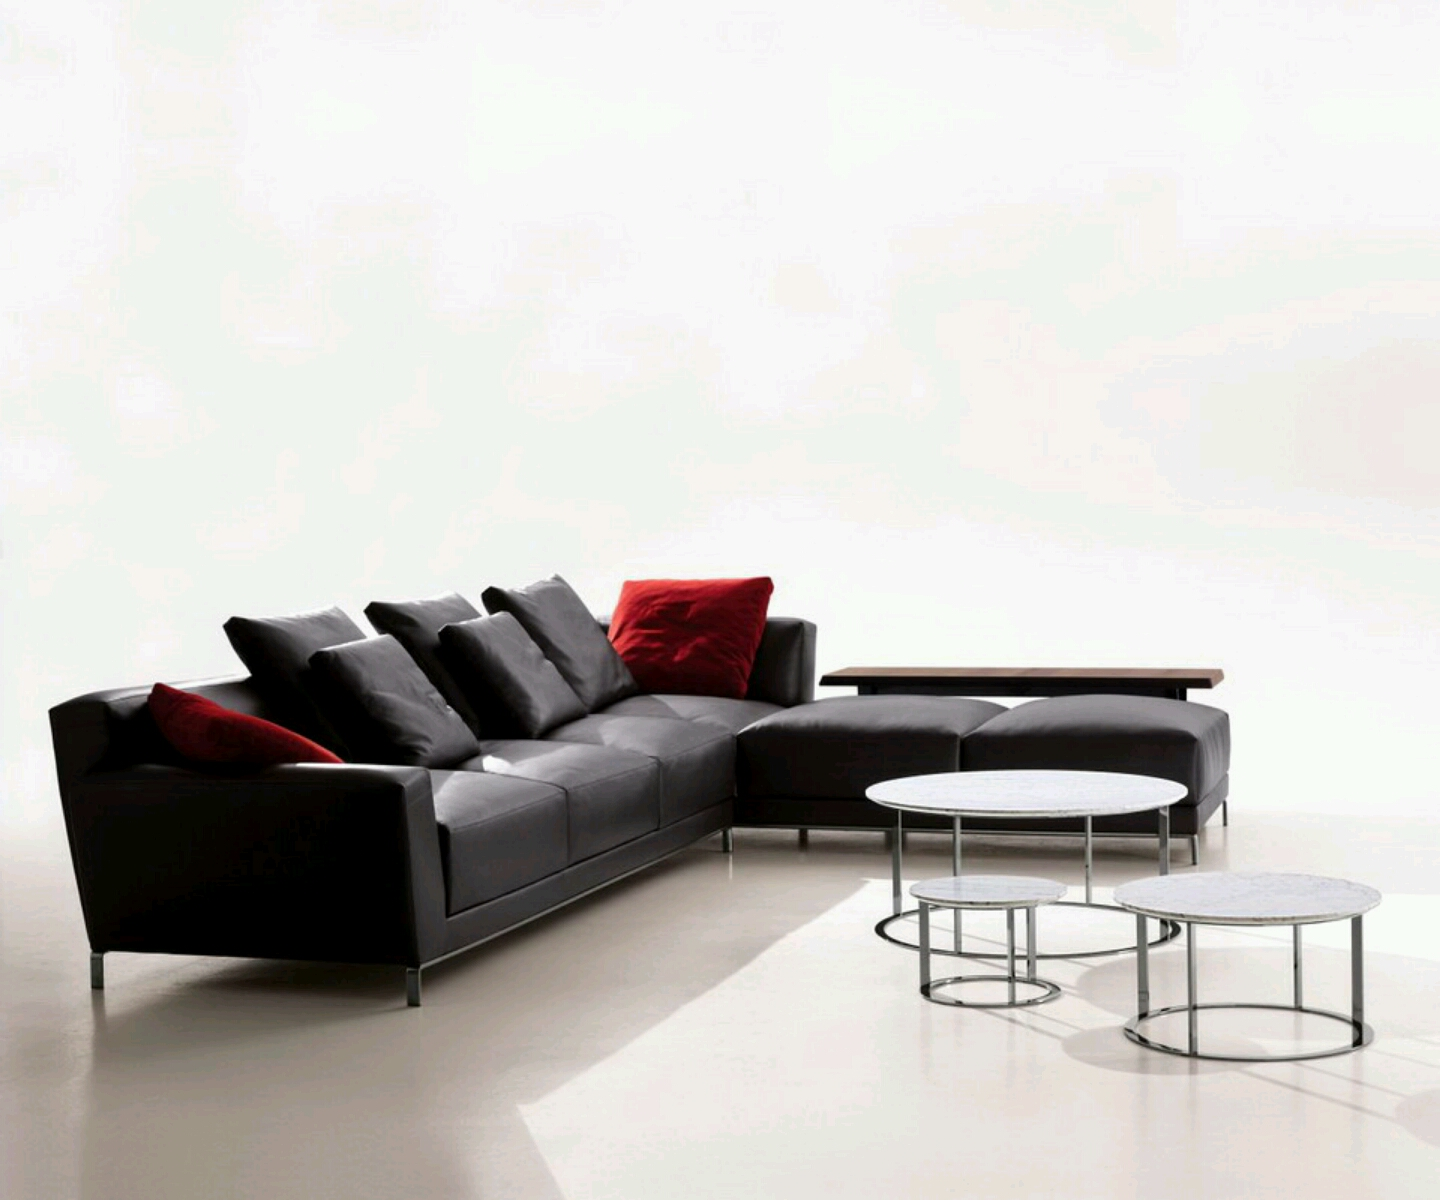 modern sofa designs with beautiful cushion styles furniture gallery. Black Bedroom Furniture Sets. Home Design Ideas